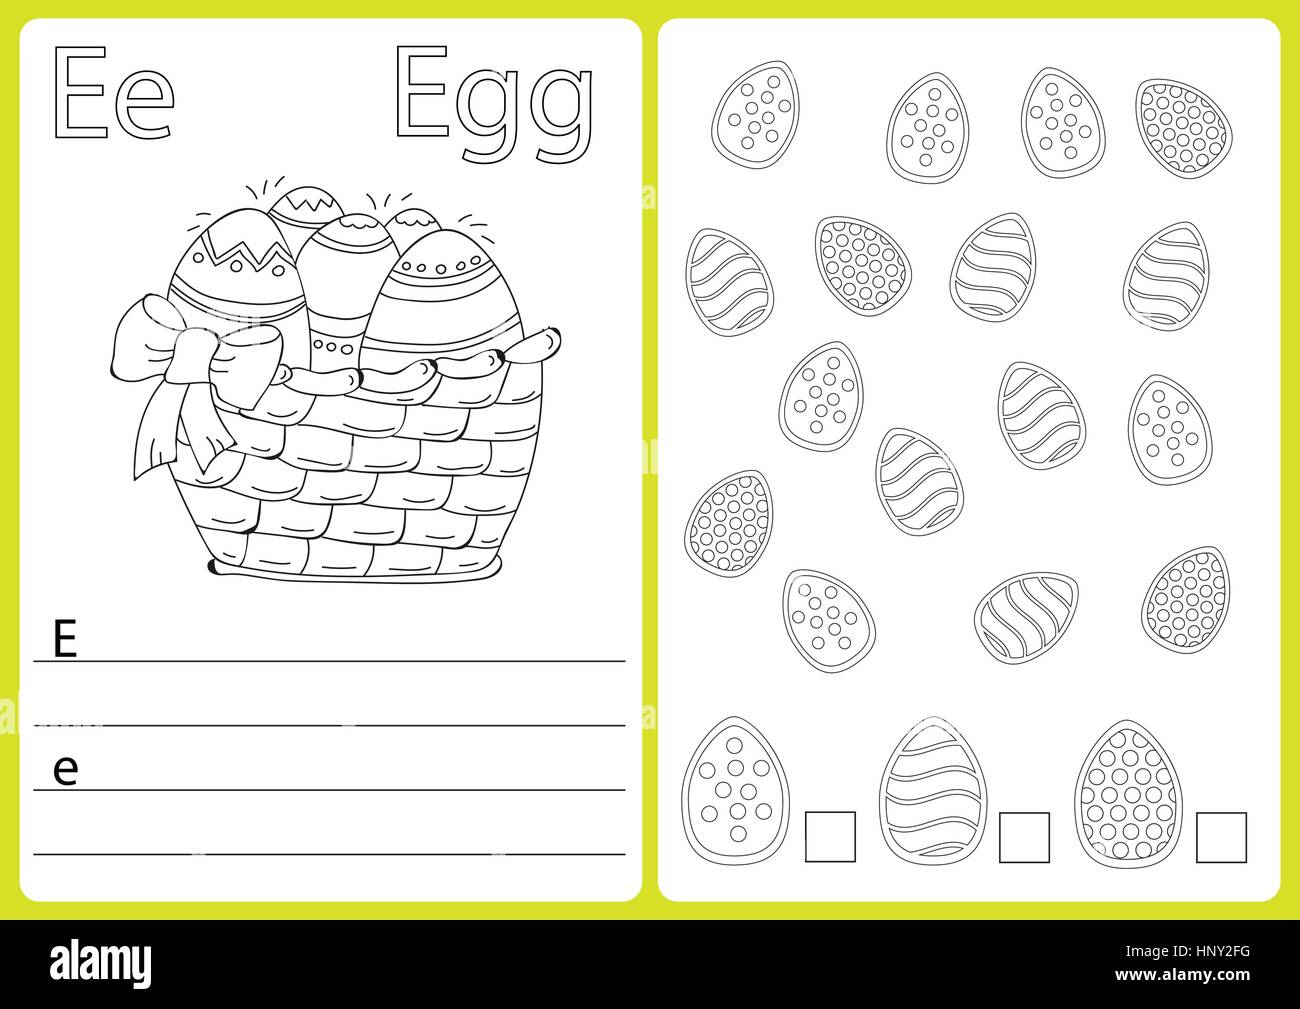 School Exercises Stock Vector Images - Alamy